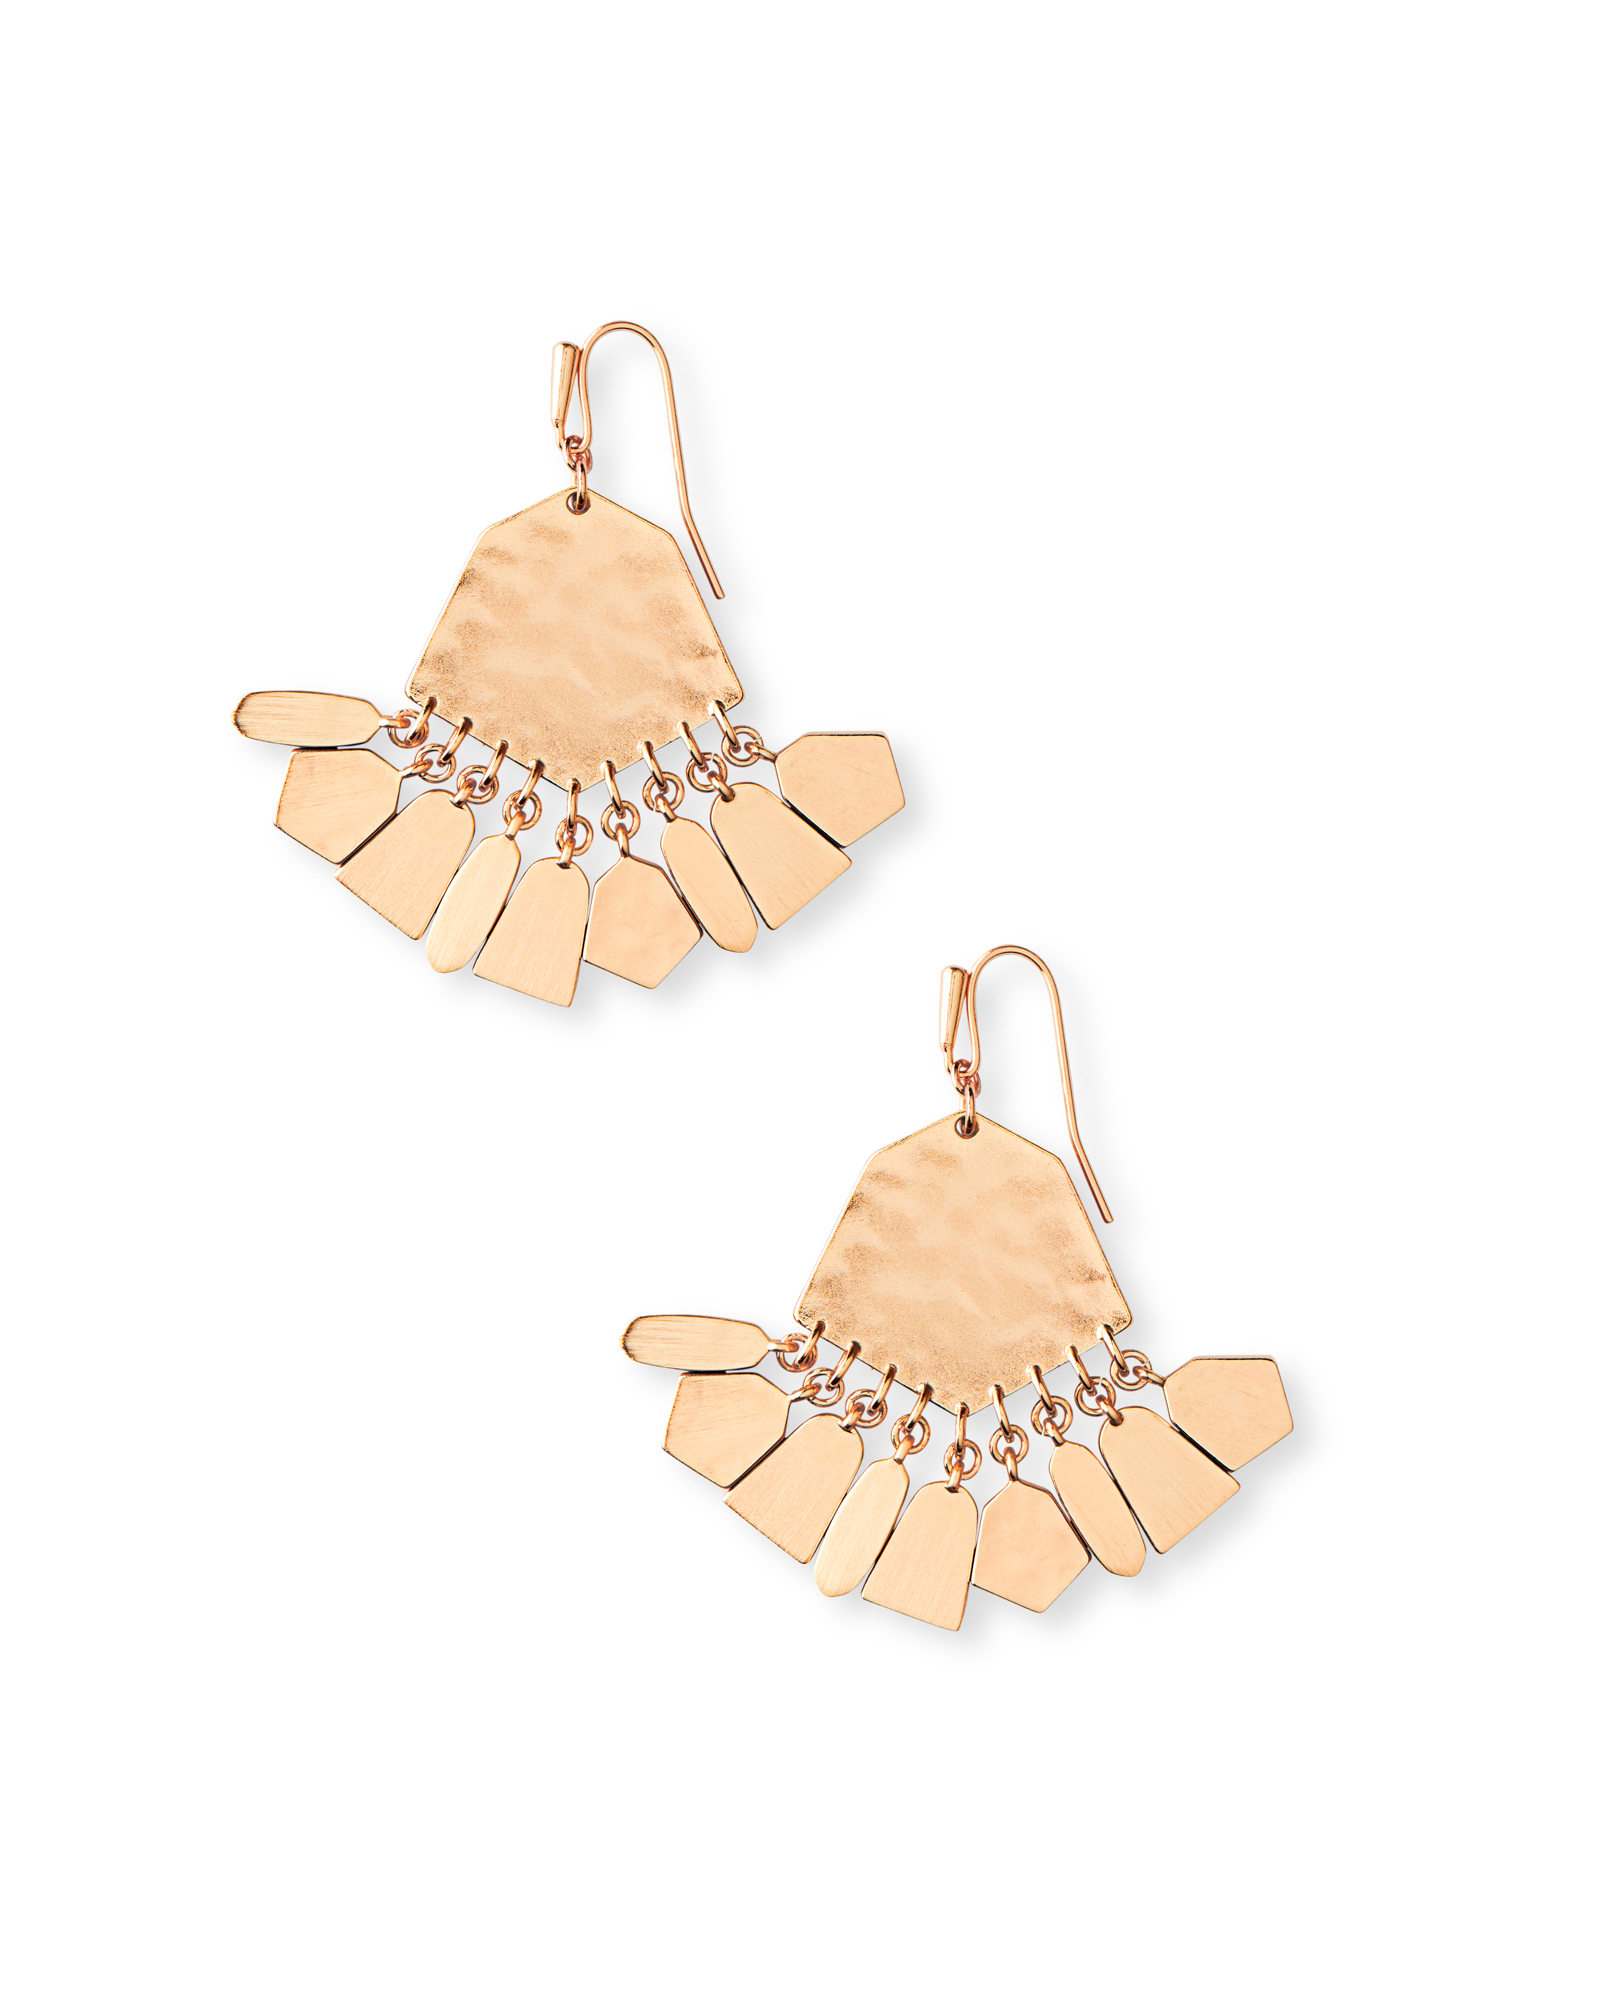 Liz Statement Earrings